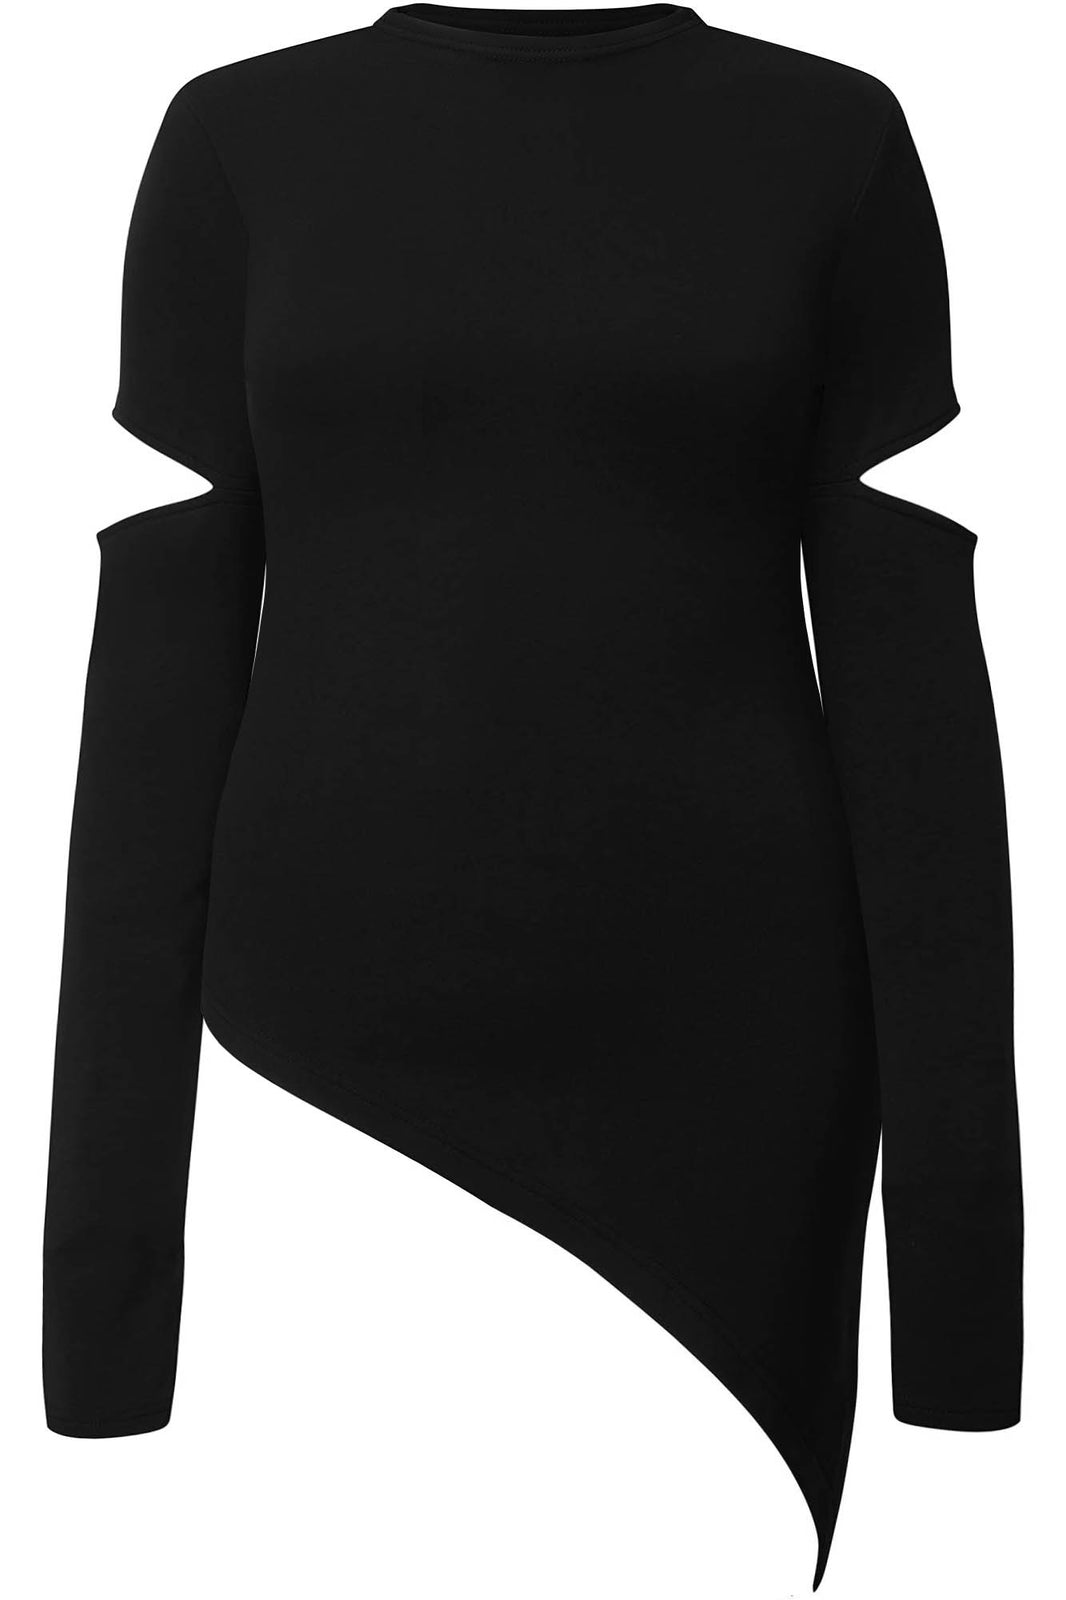 Wicked Ways Tunic Top [PLUS]